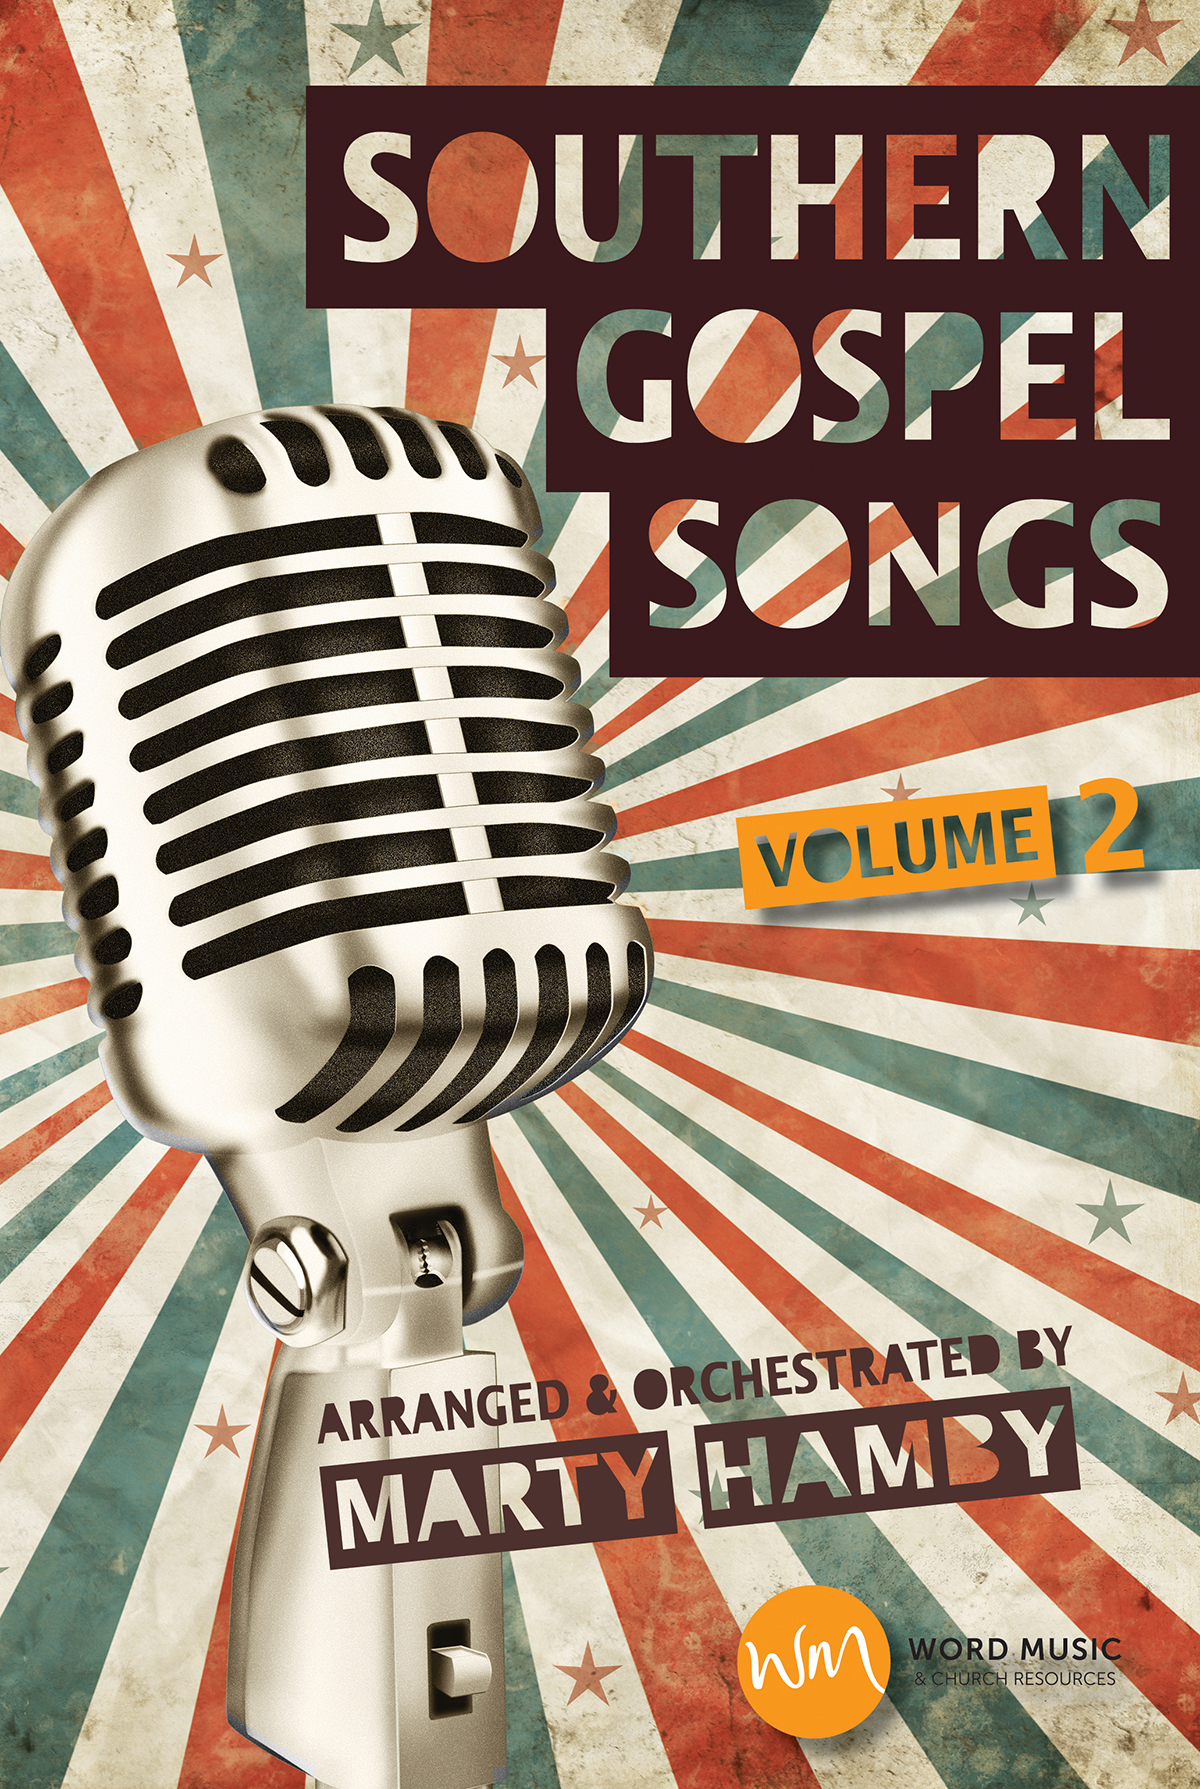 Southern Gospel Songs, Volume 2